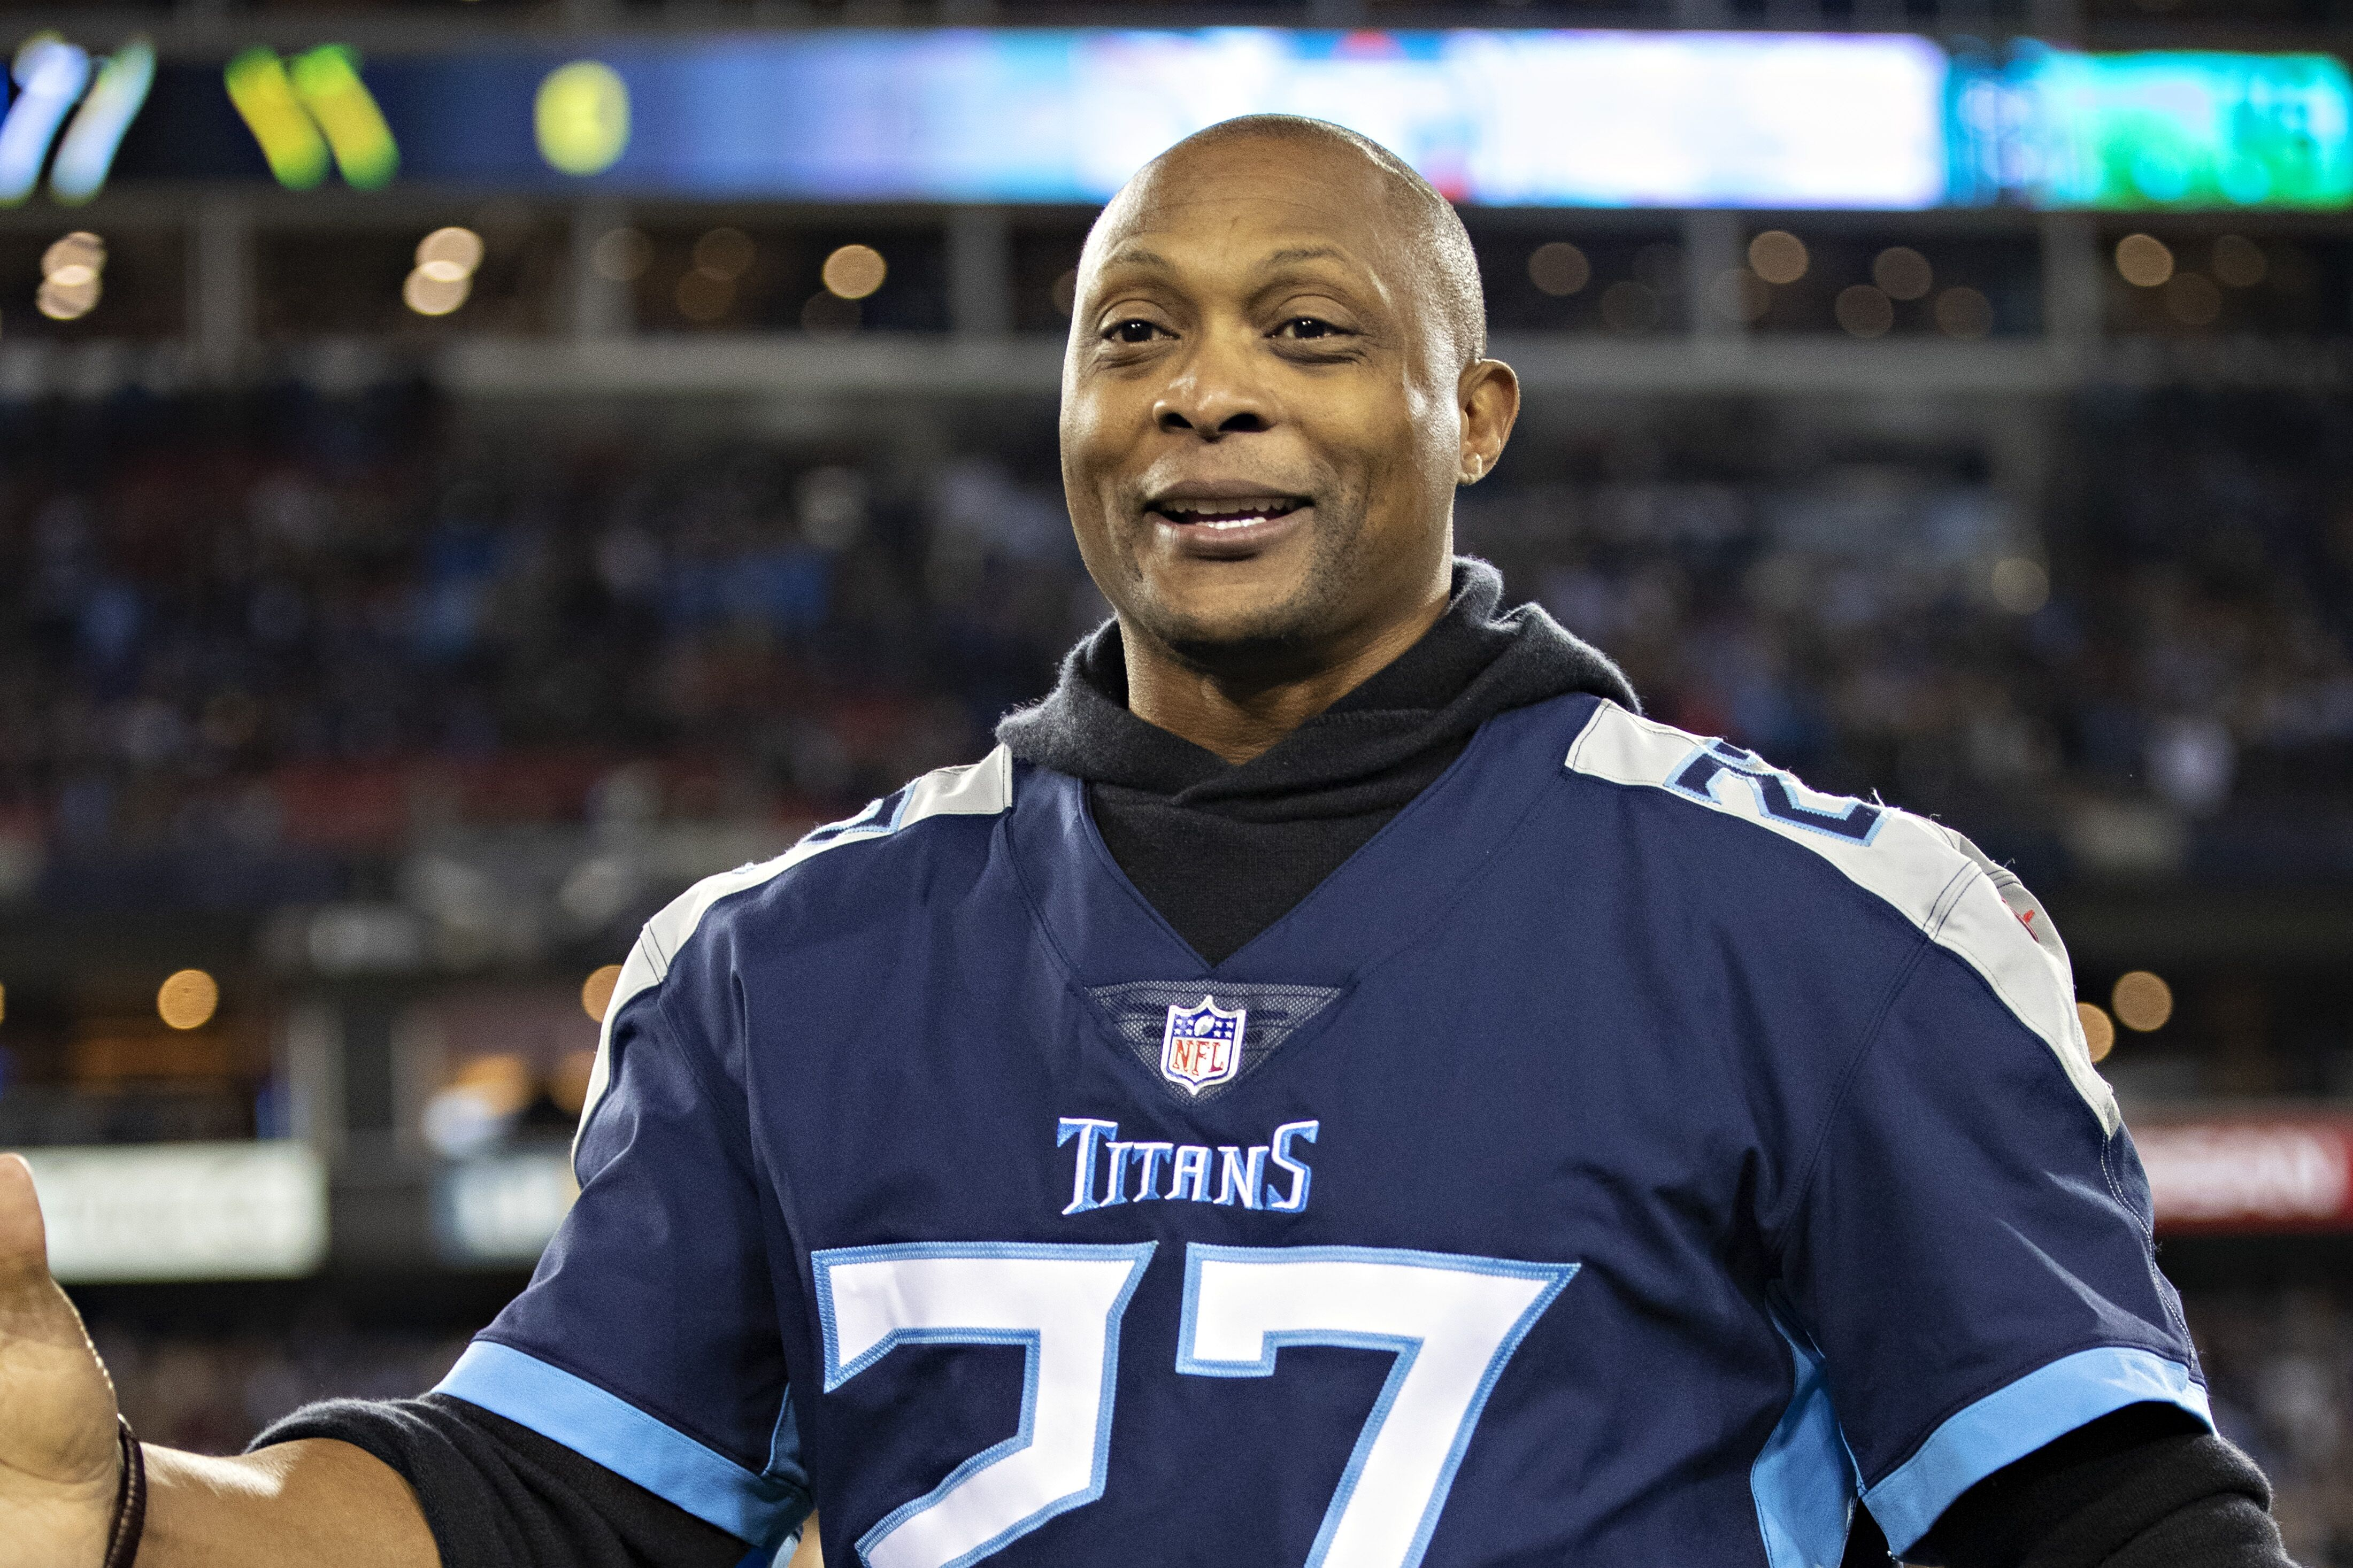 NASHVILLE, TN - DECEMBER 30: Eddie George, former member of the Tennessee Titans, on the field before a game against the Indianapolis Colts at Nissan Stadium on December 30, 2018 in Nashville, Tennessee. The Colts defeated the Titans 33-17. (Photo by Wesley Hitt/Getty Images)